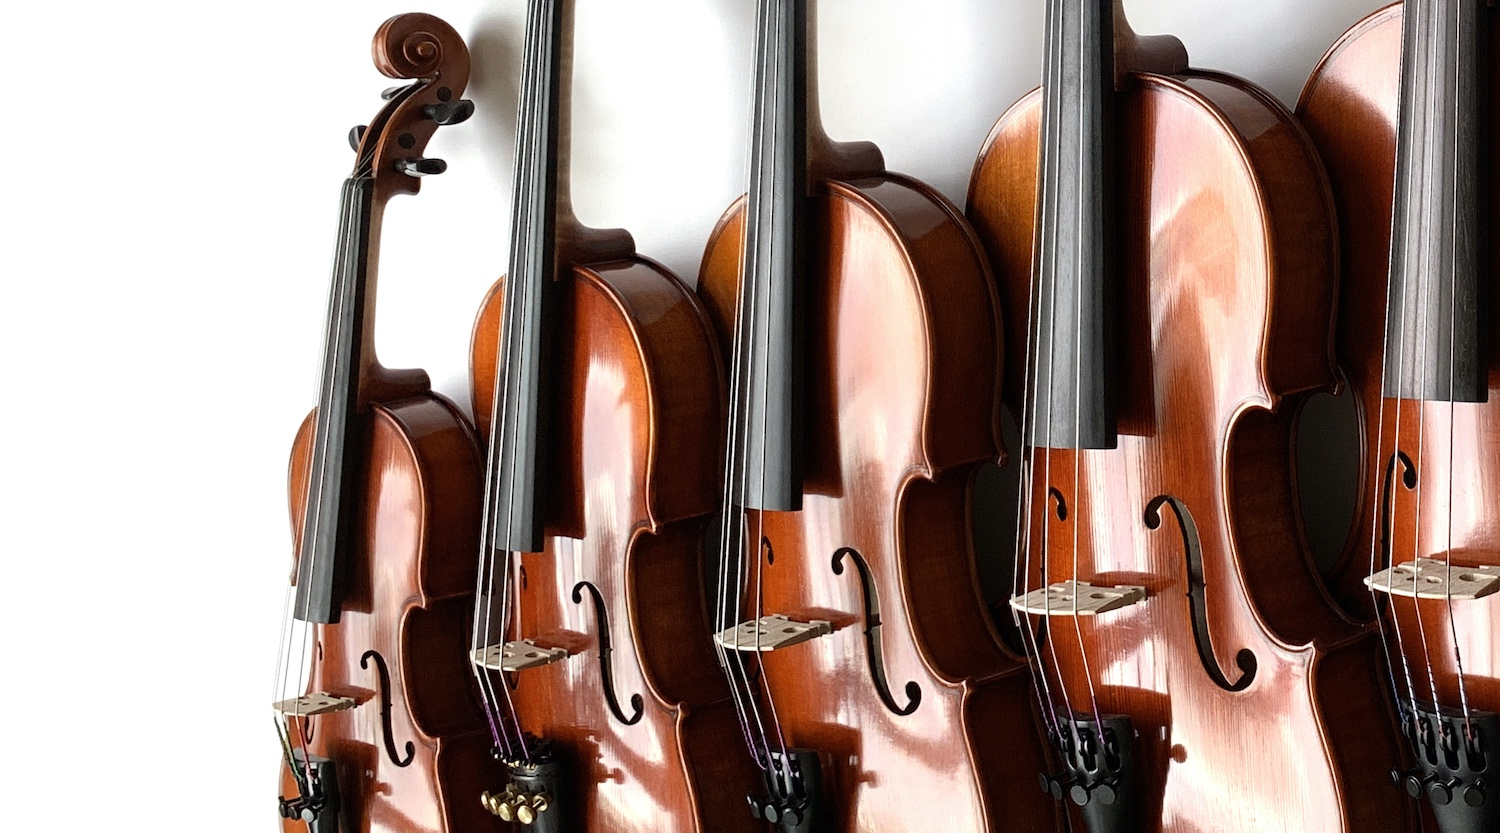 Violins from smallest to largest